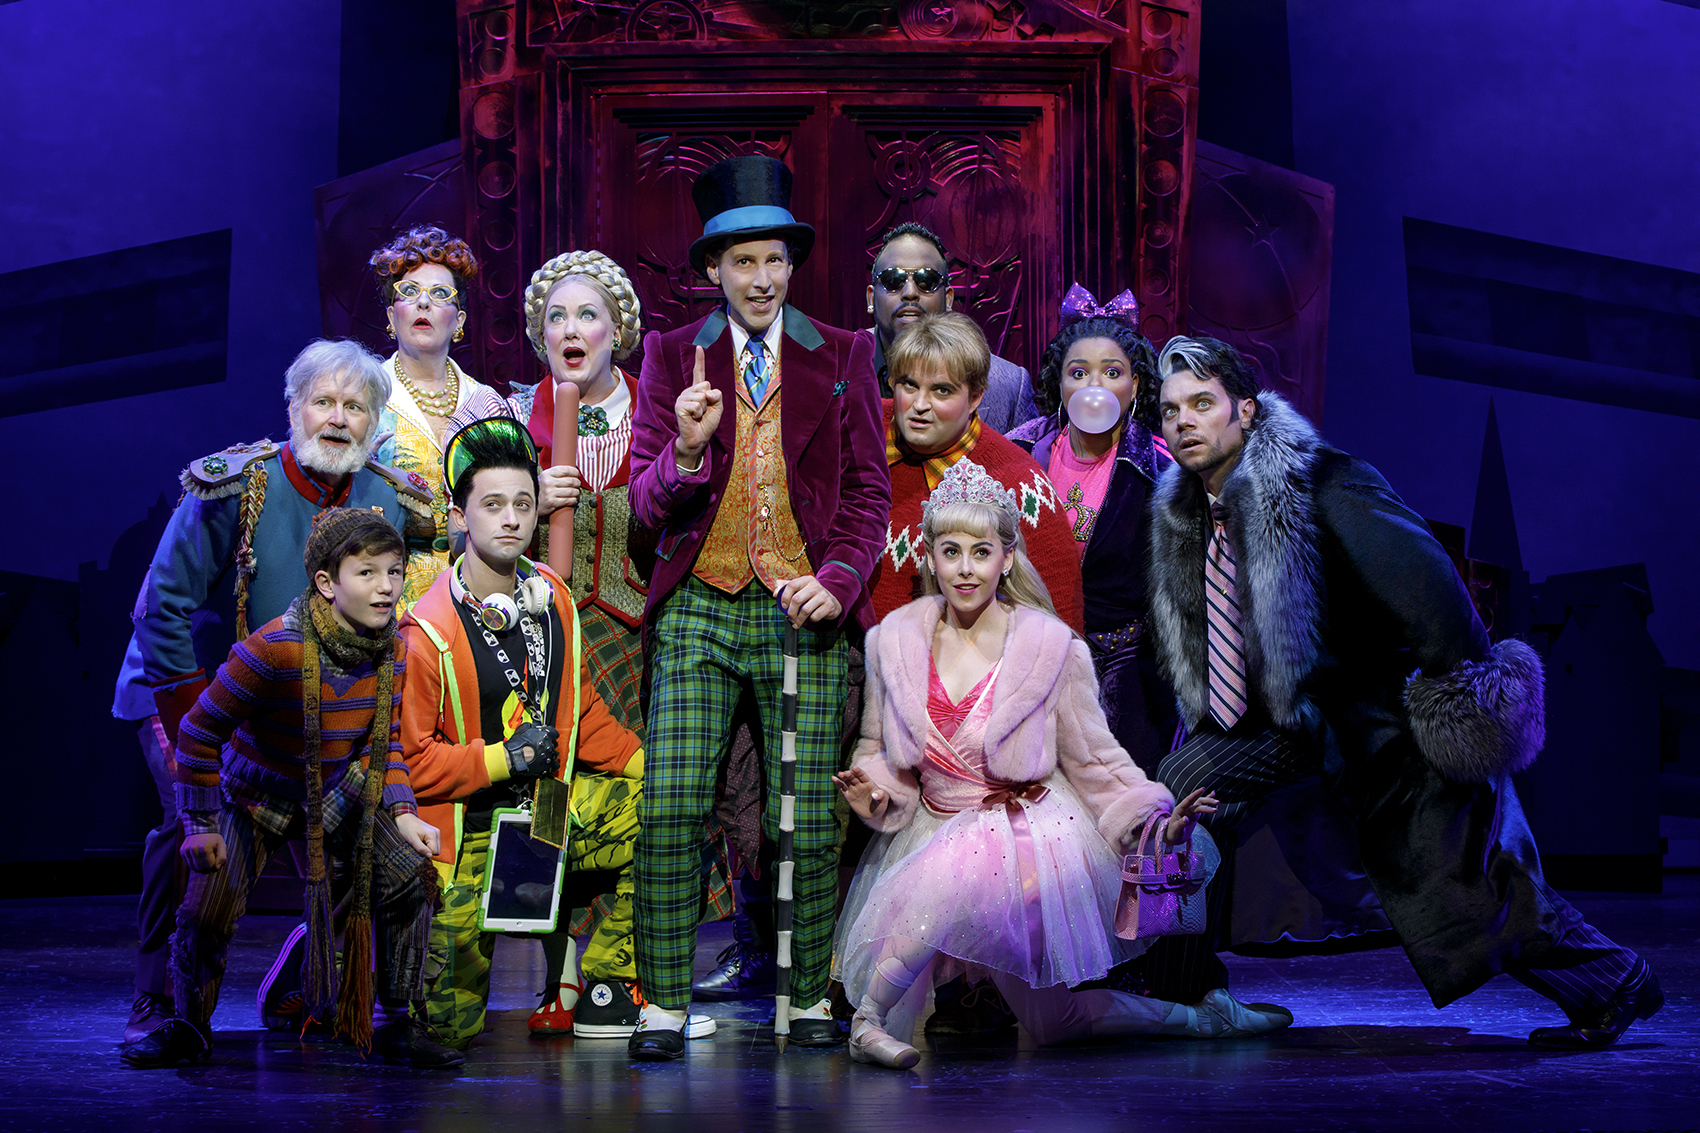 Pure Imagination: 'Charlie And The Chocolate Factory' Brings Willy Wonka To The Stage